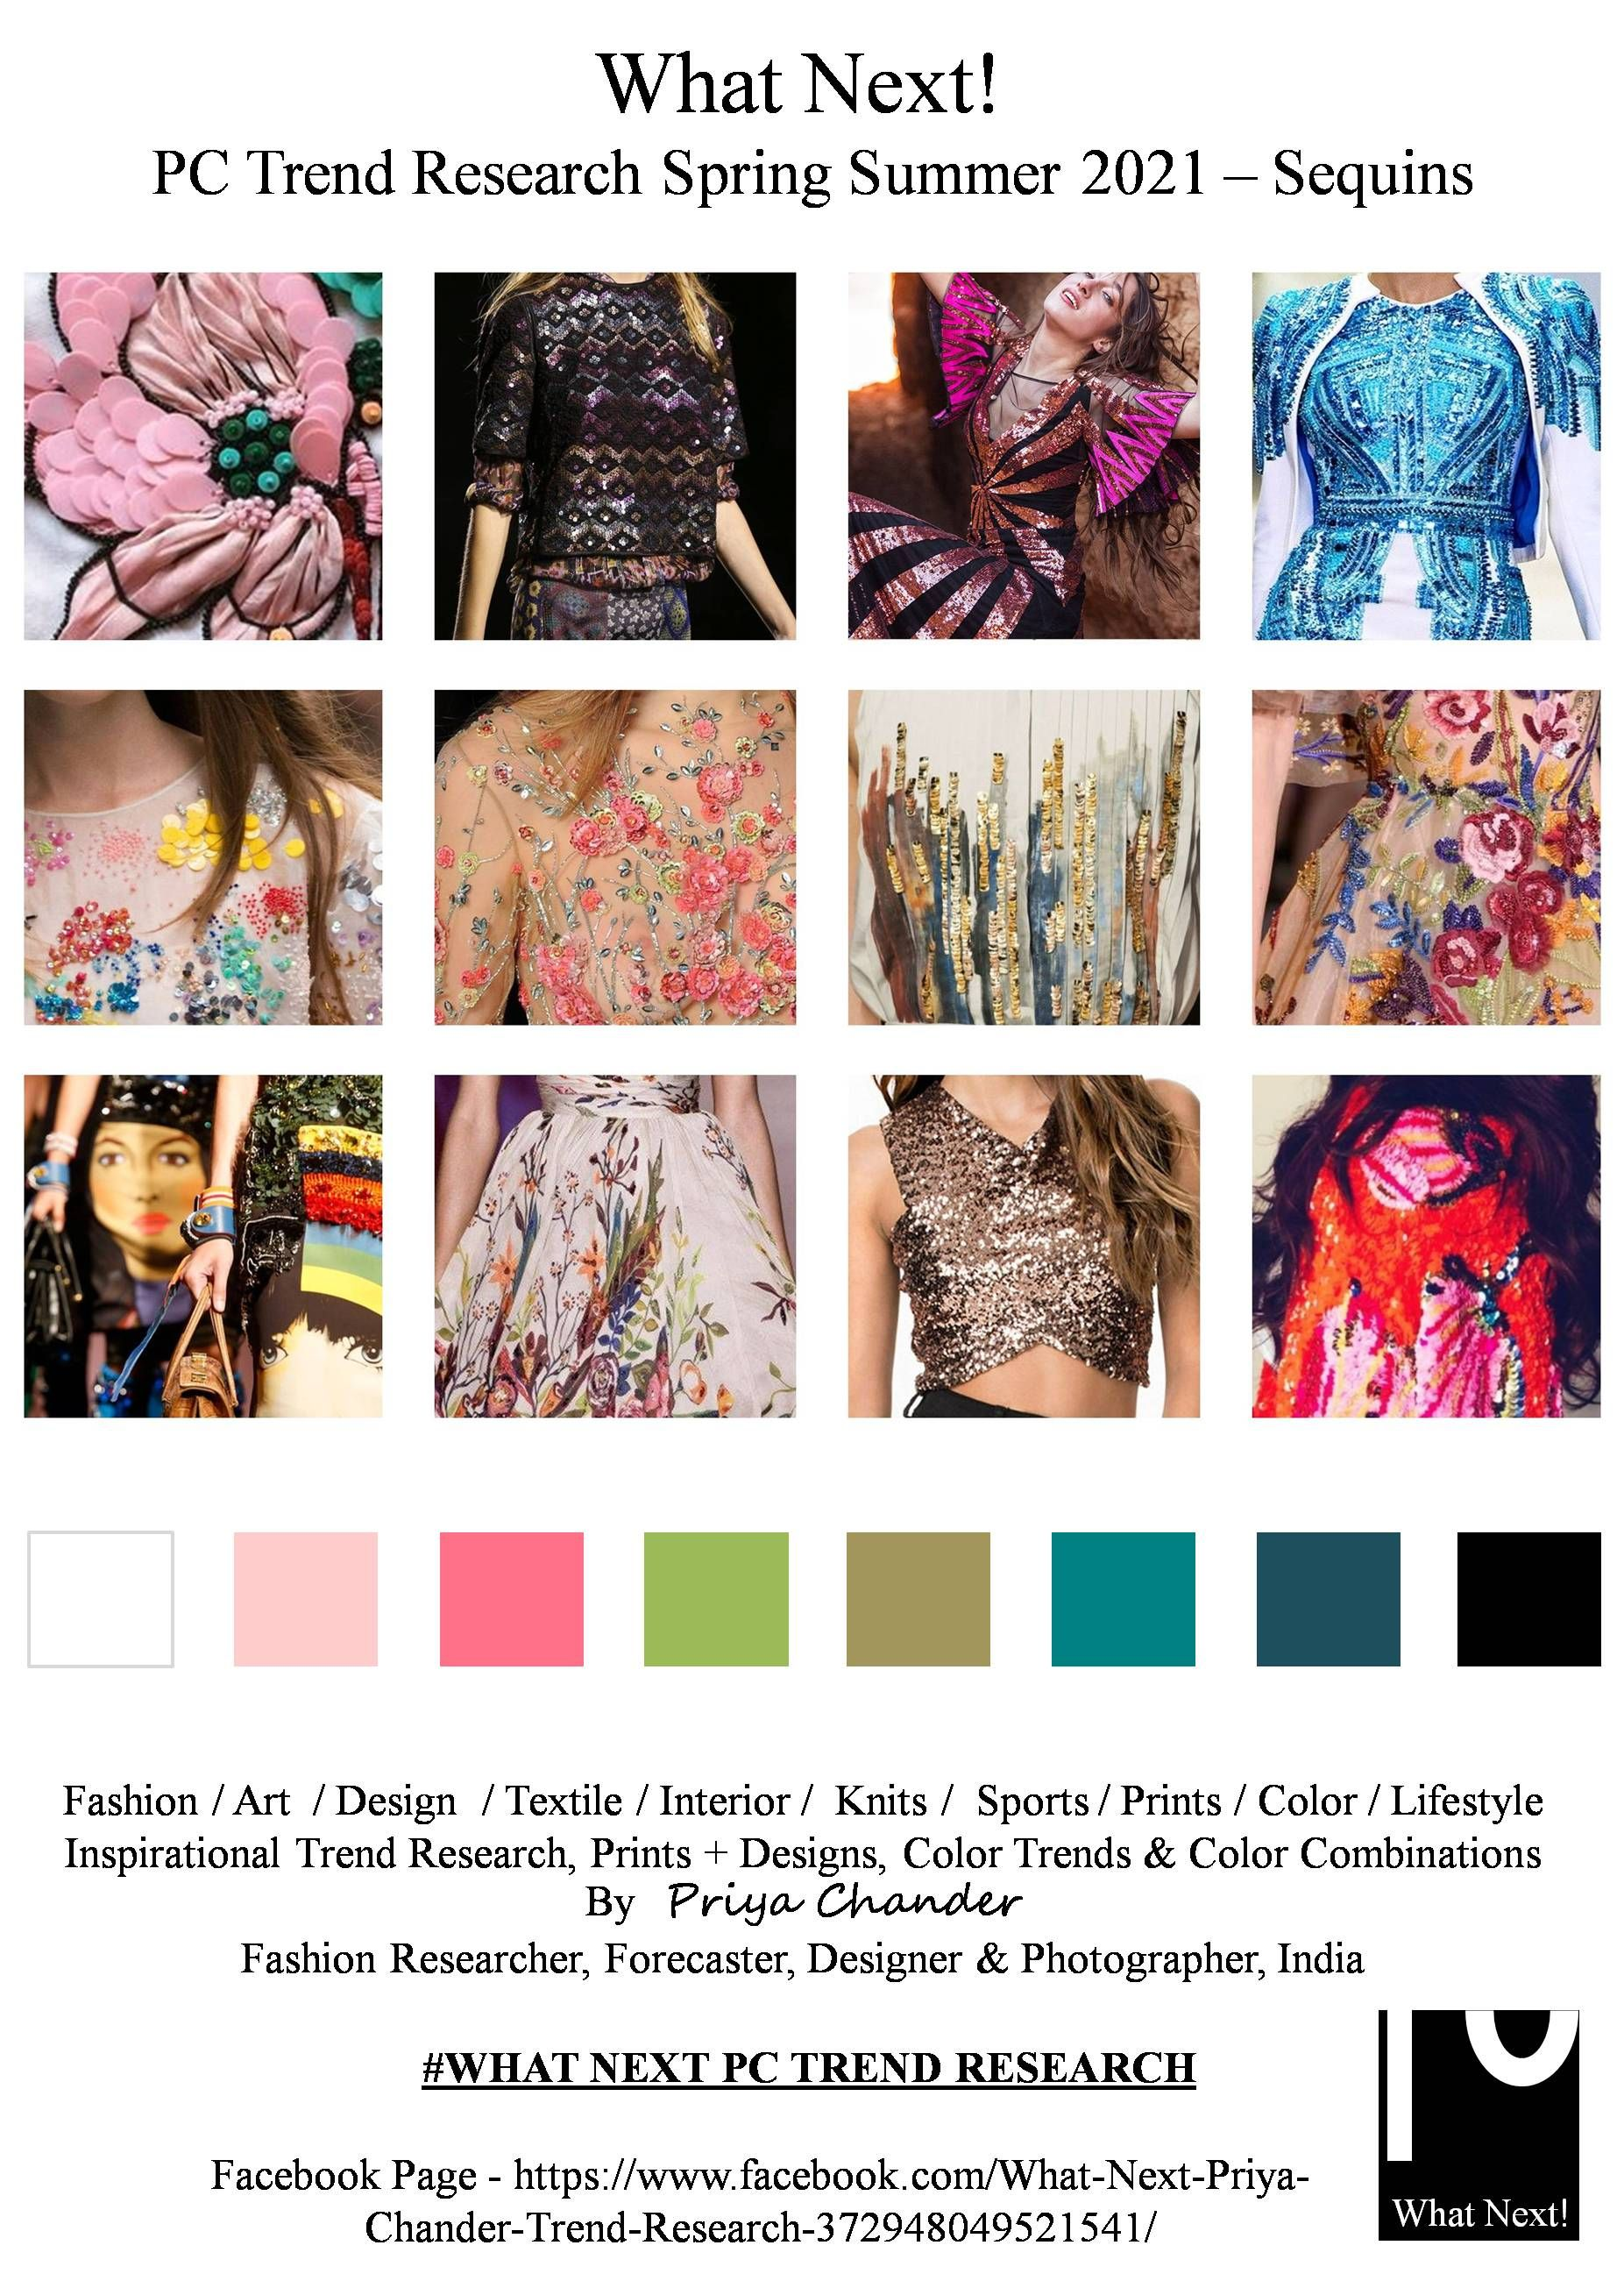 #Sequins #sequinfashiontrend #SS2021 #sequinfashion #WhatNextPCTrendResearch